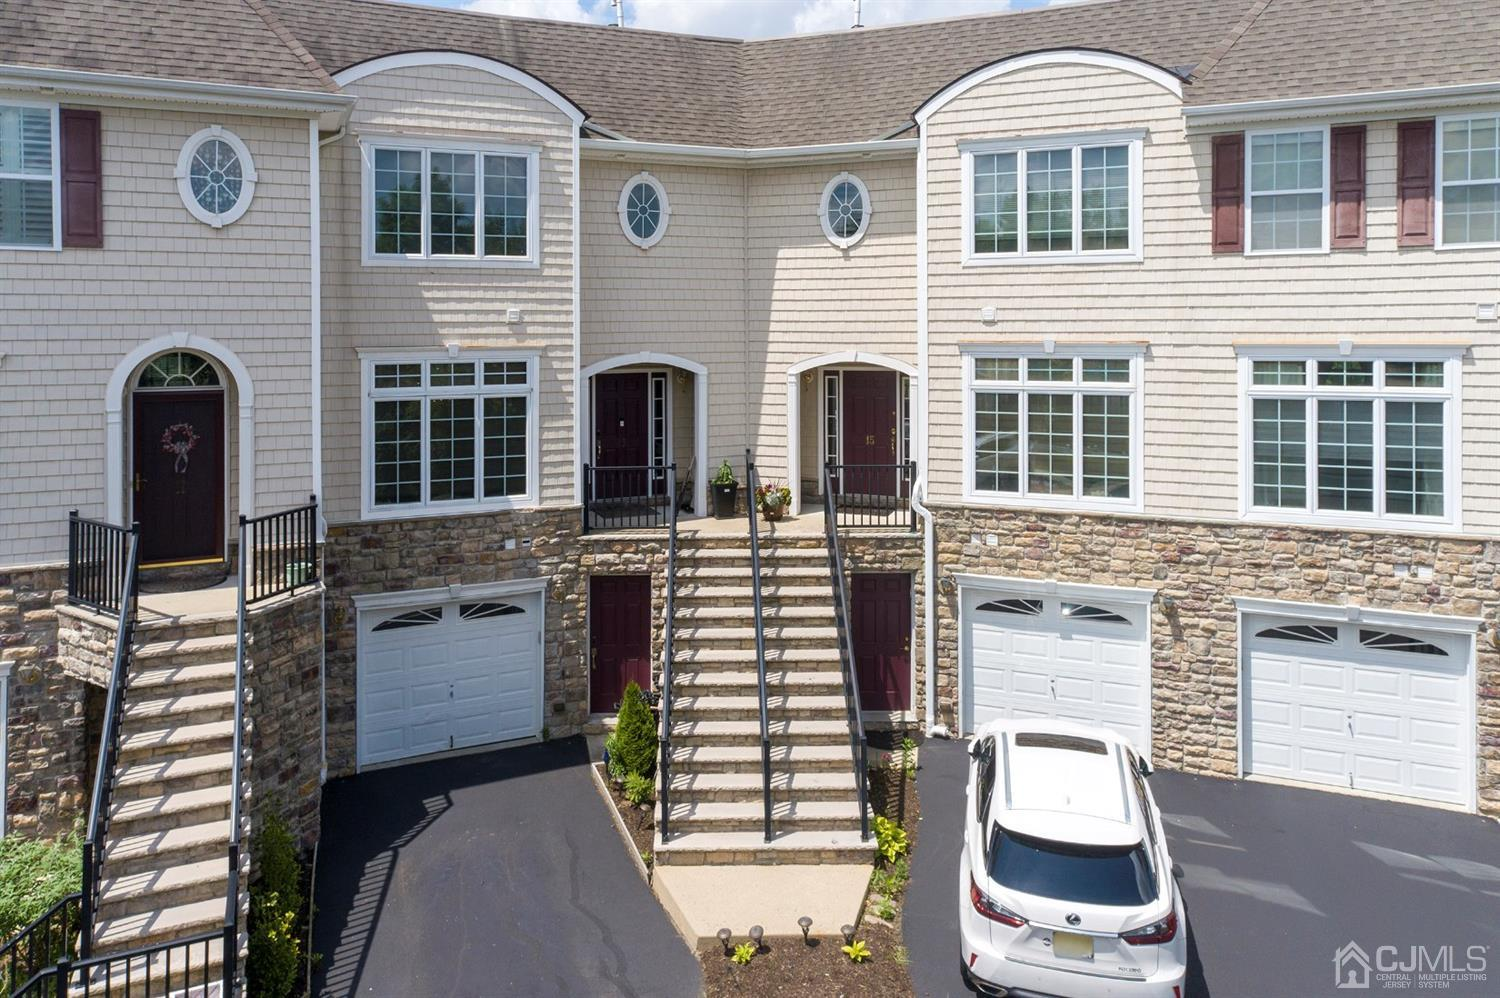 Property for sale at 13 Baker Court, Old Bridge,  New Jersey 08857